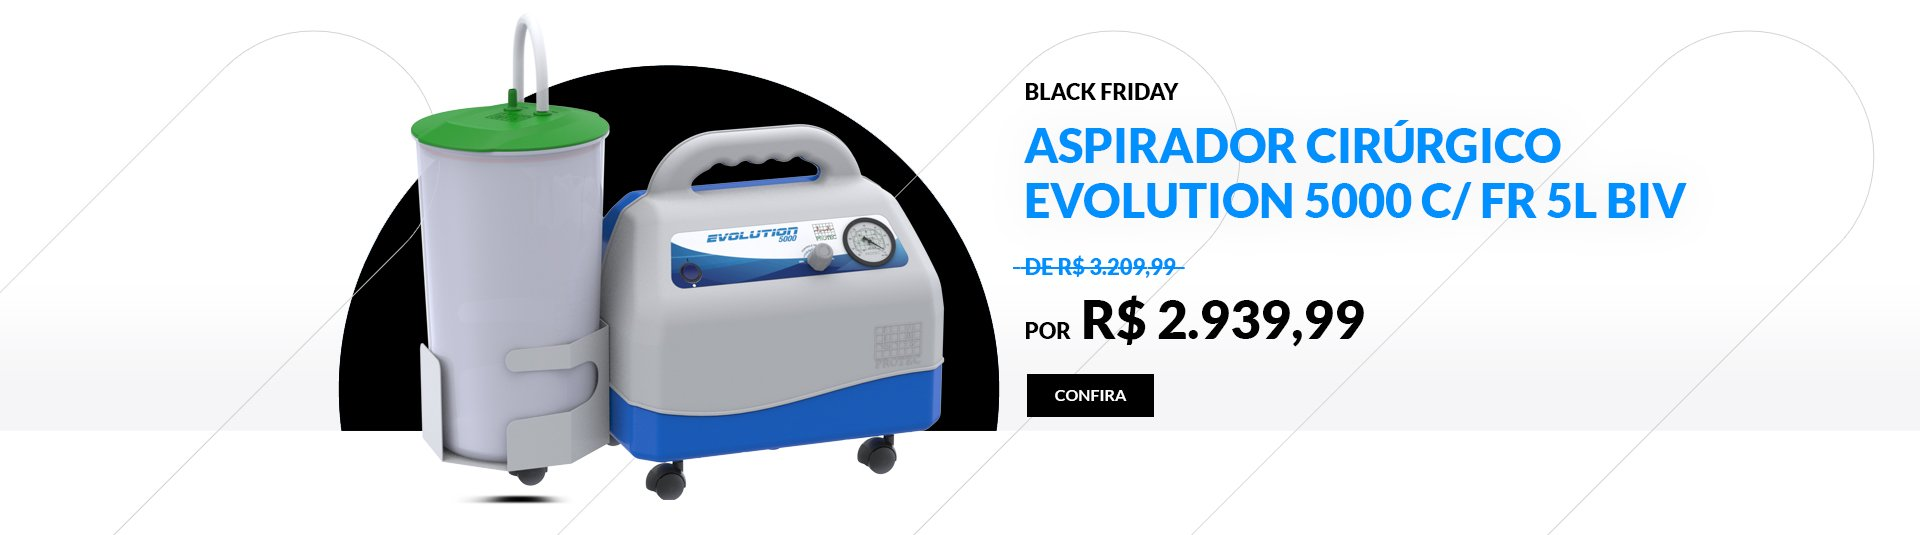 BLACK FRIDAY ASPIRADORES